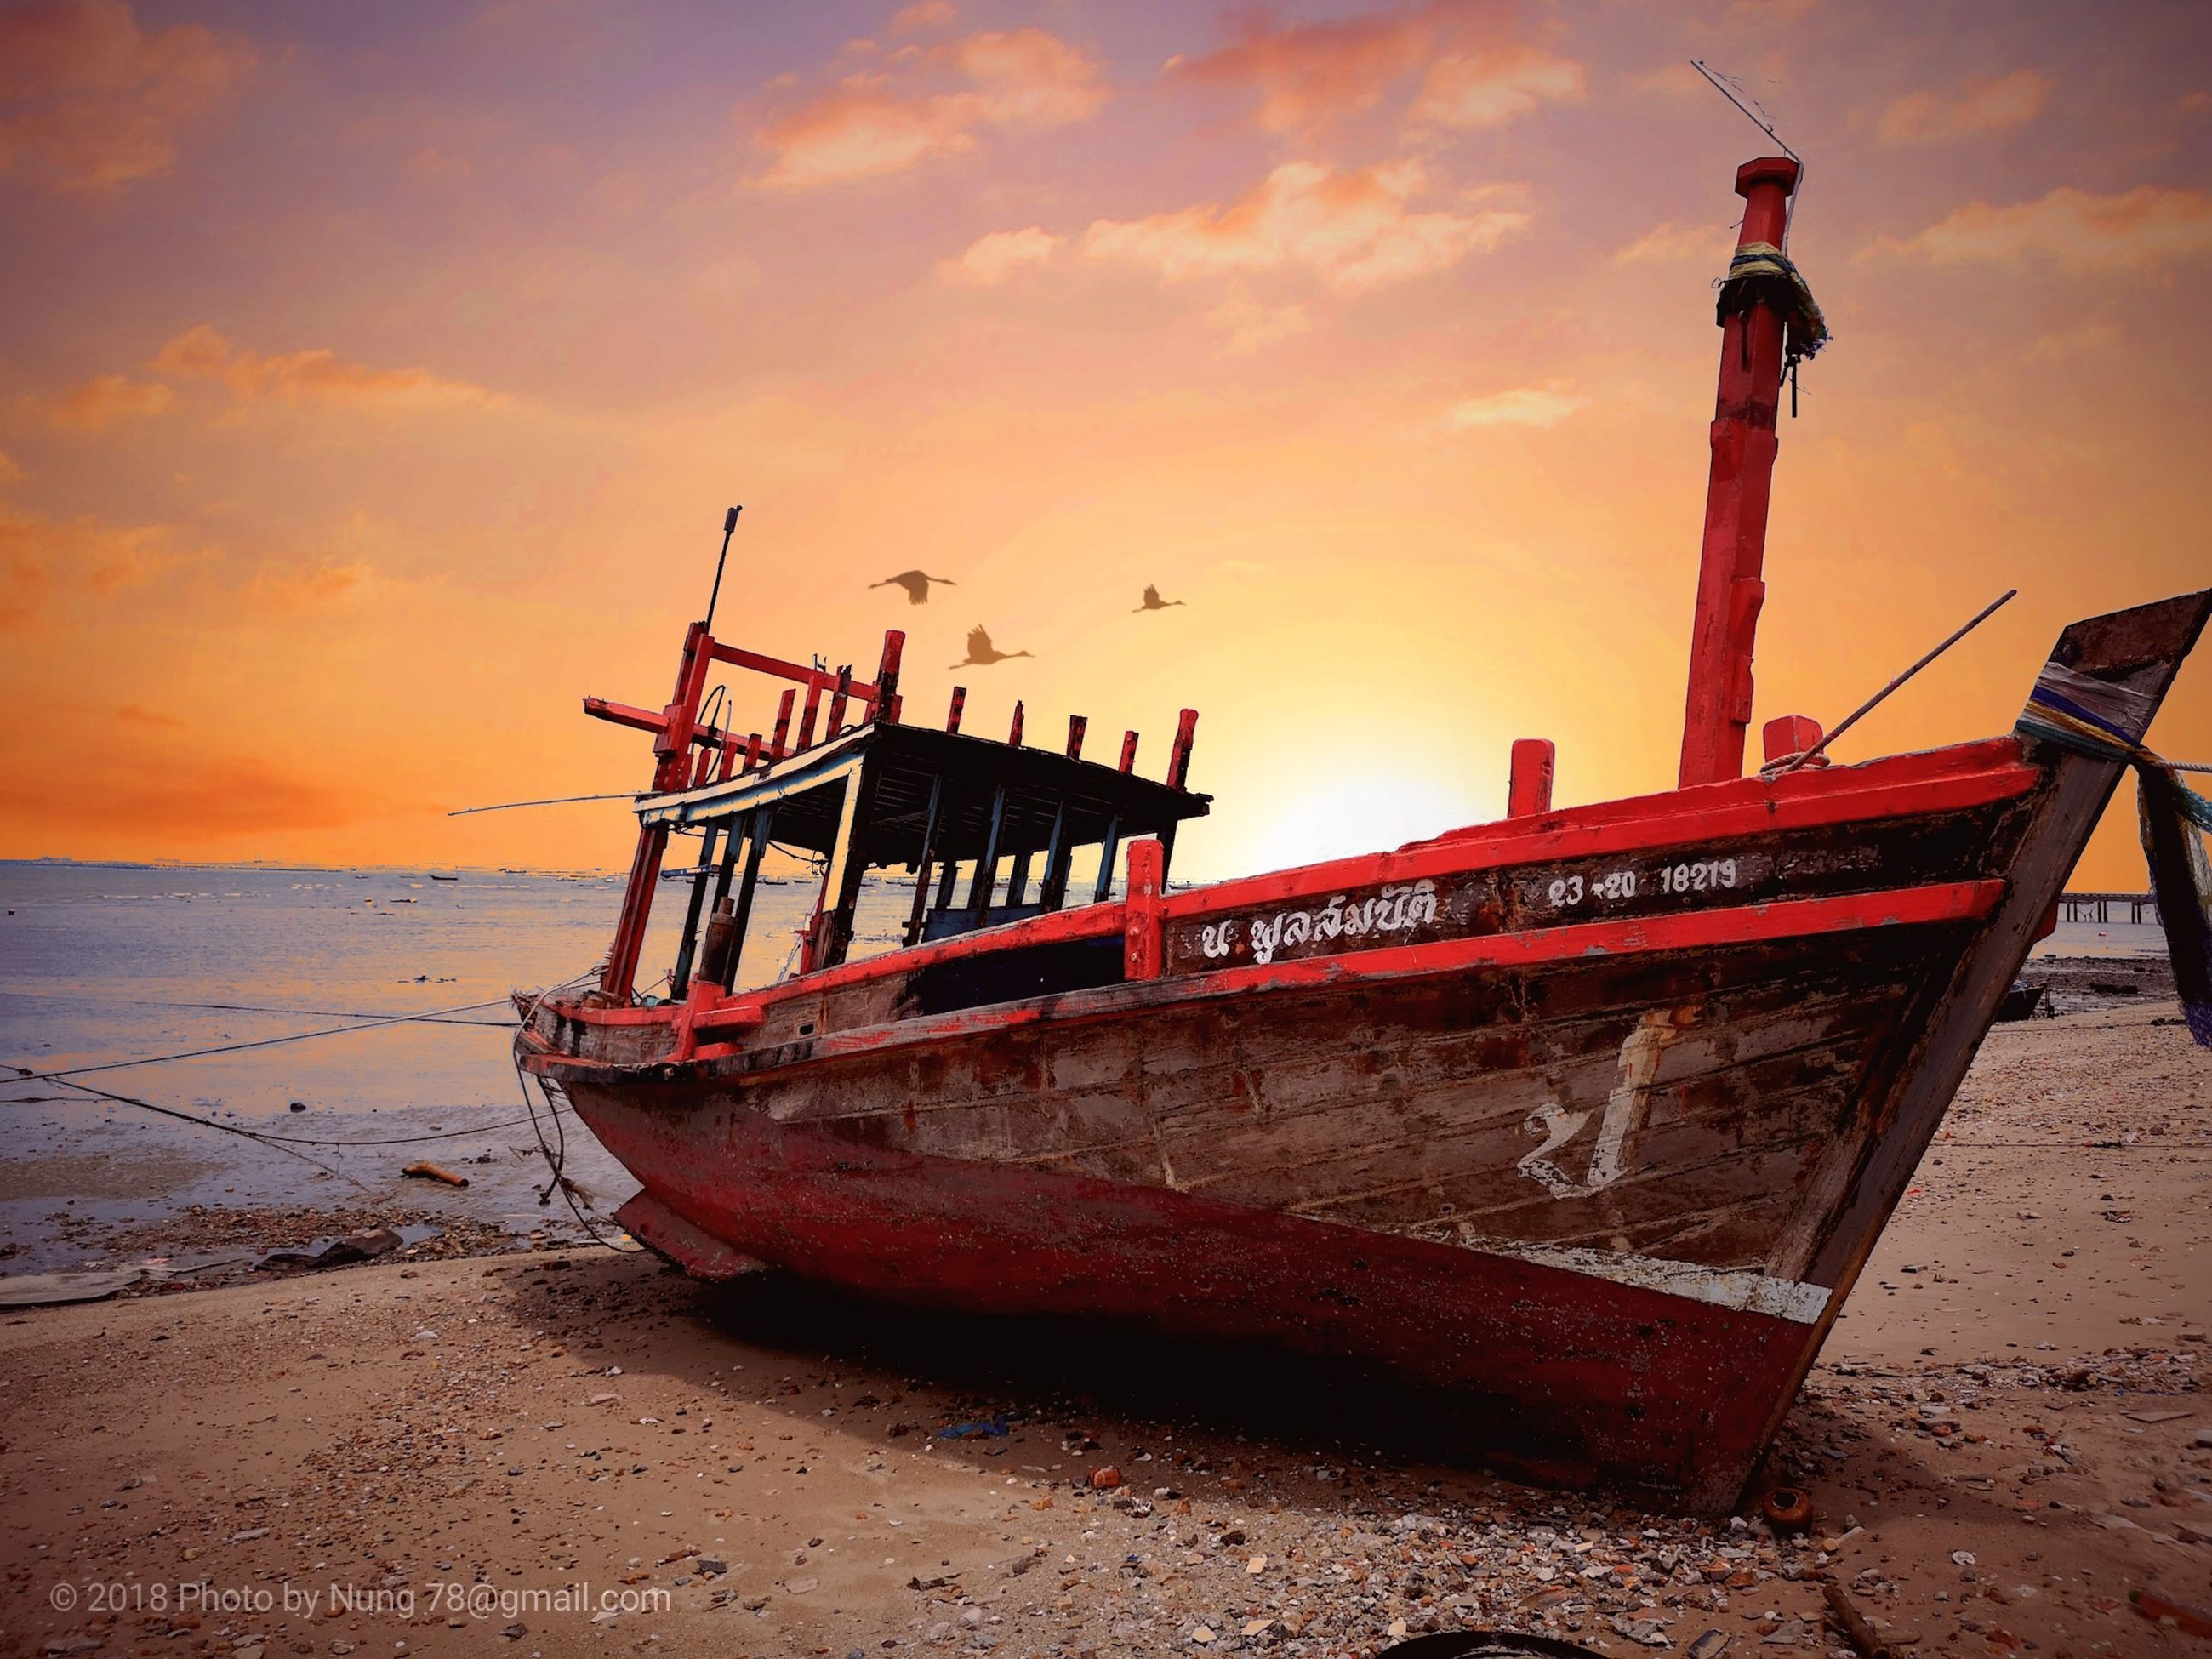 nautical vessel, sky, mode of transportation, water, transportation, sunset, sea, moored, beach, land, cloud - sky, nature, no people, orange color, travel, scenics - nature, beauty in nature, tranquility, outdoors, fishing boat, fishing industry